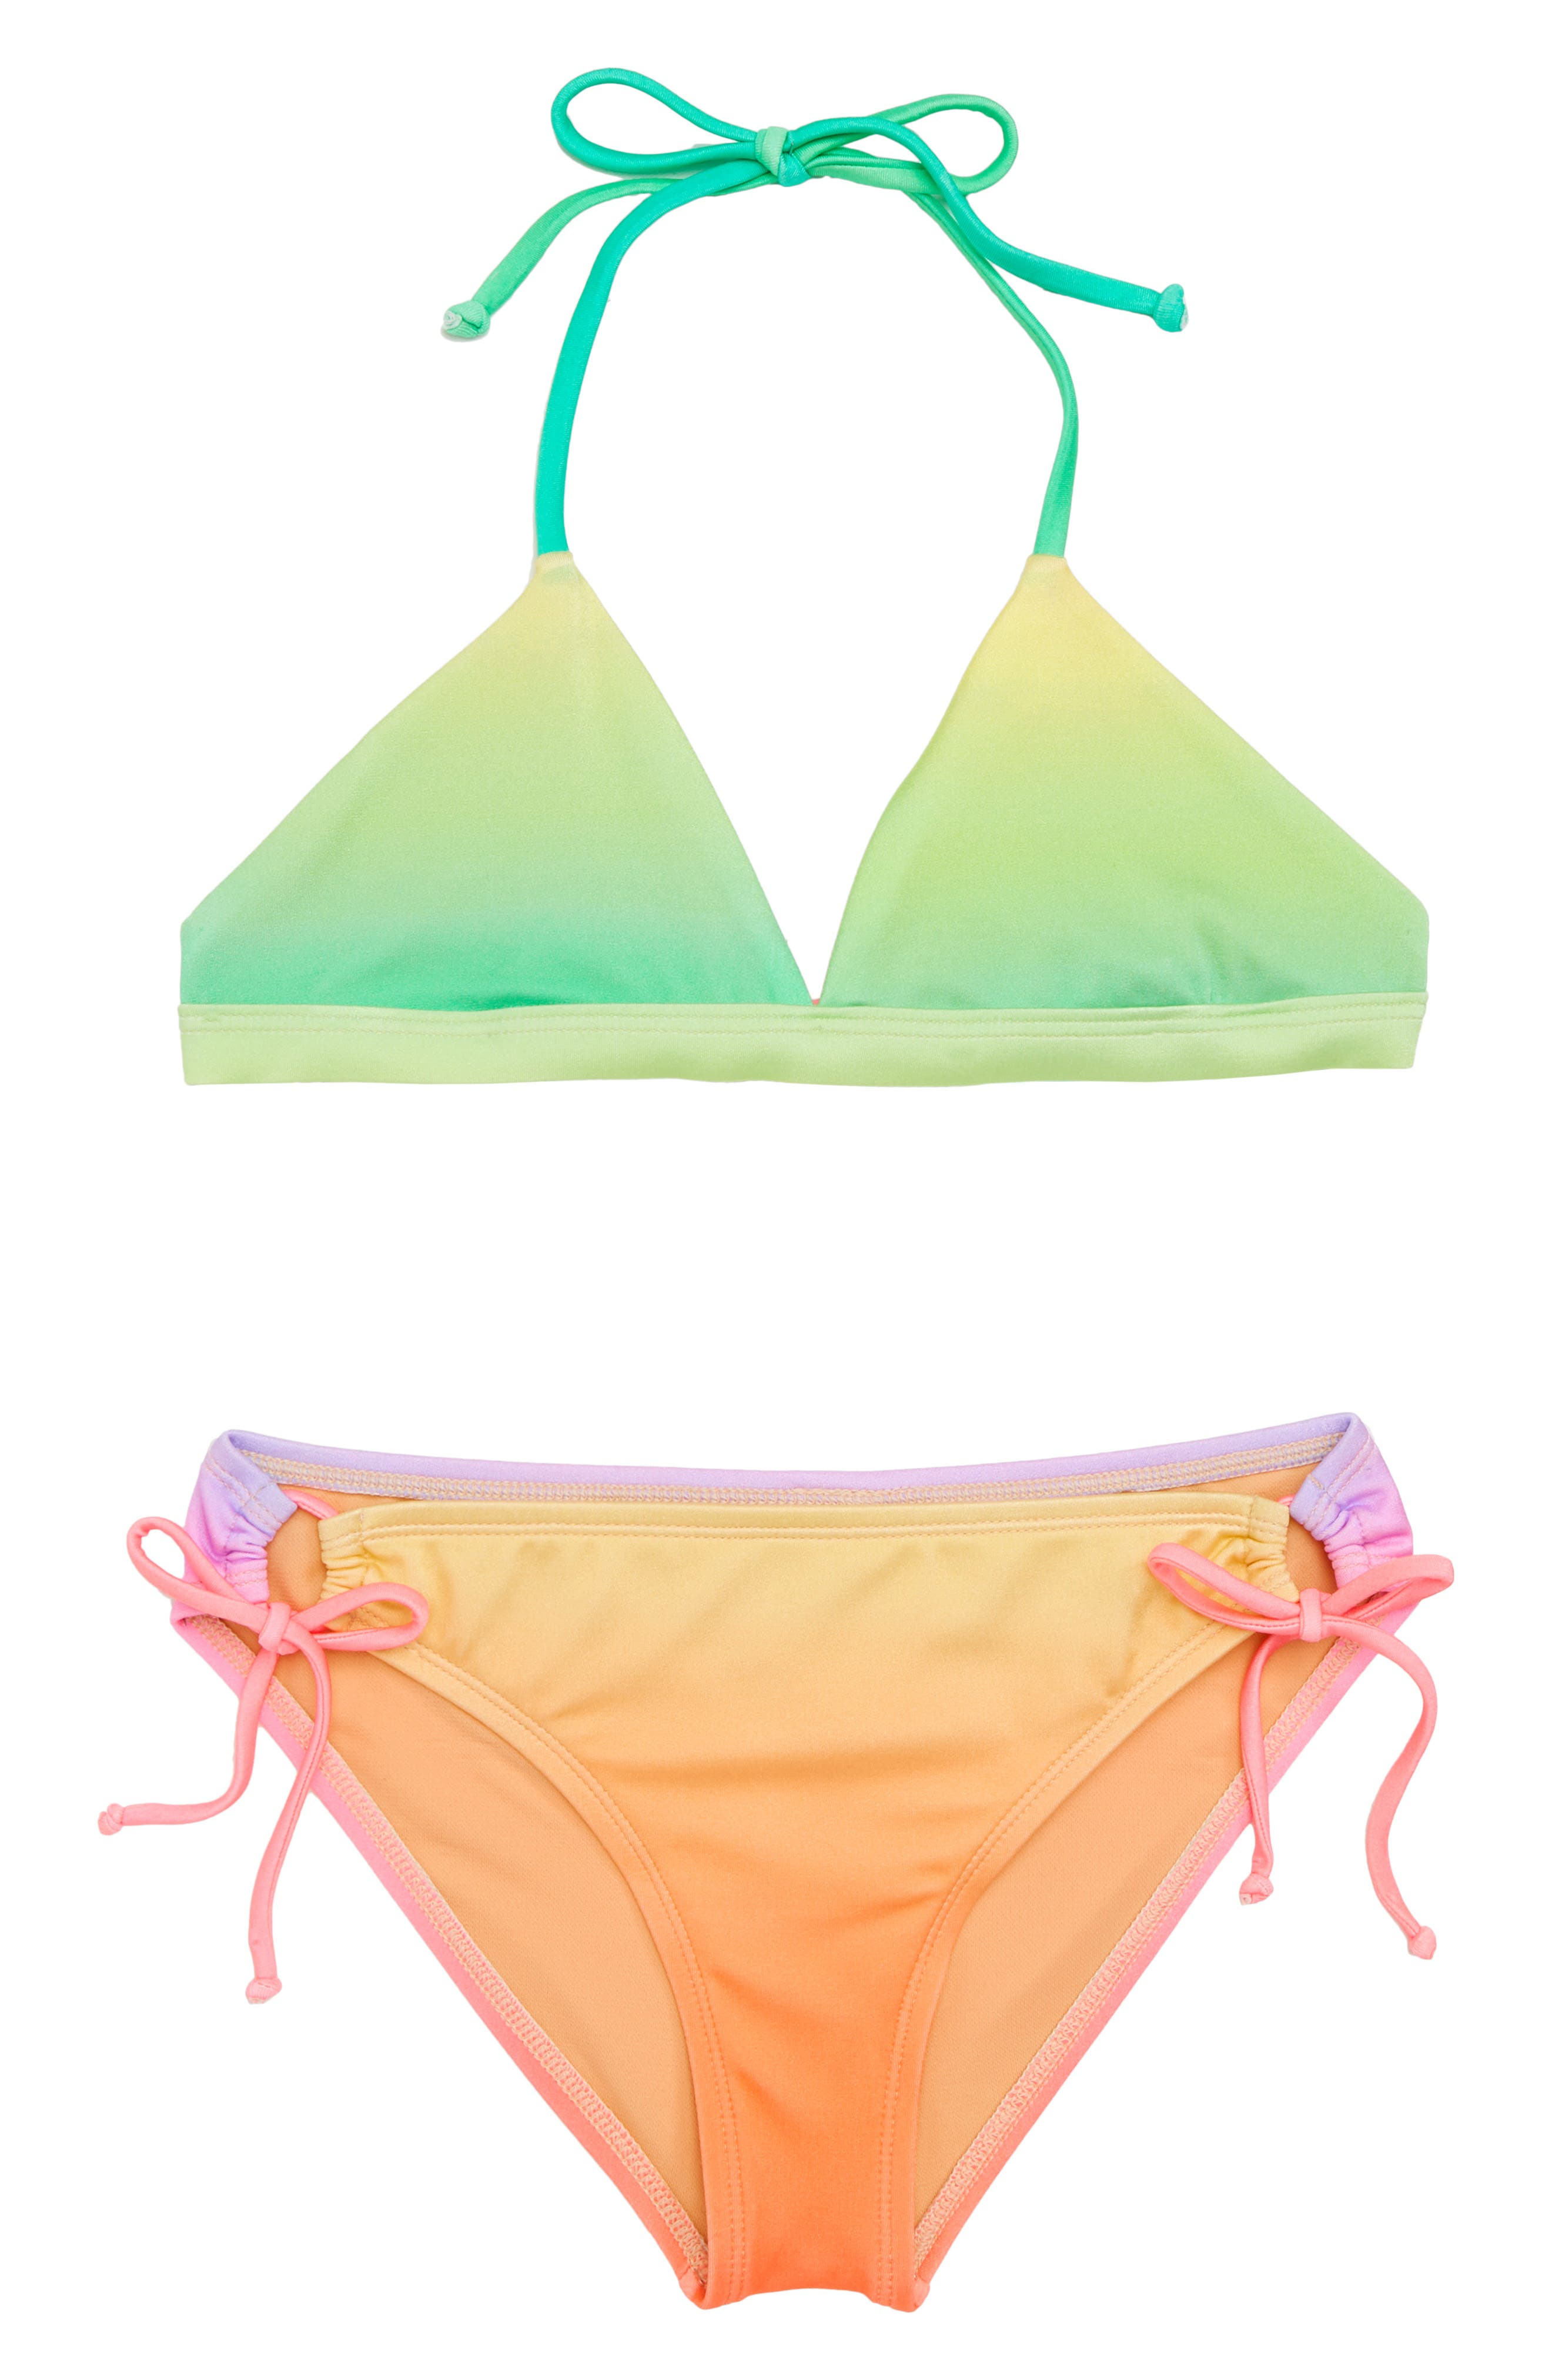 Teen Spirit Triangle Two-Piece Swimsuit,                             Main thumbnail 1, color,